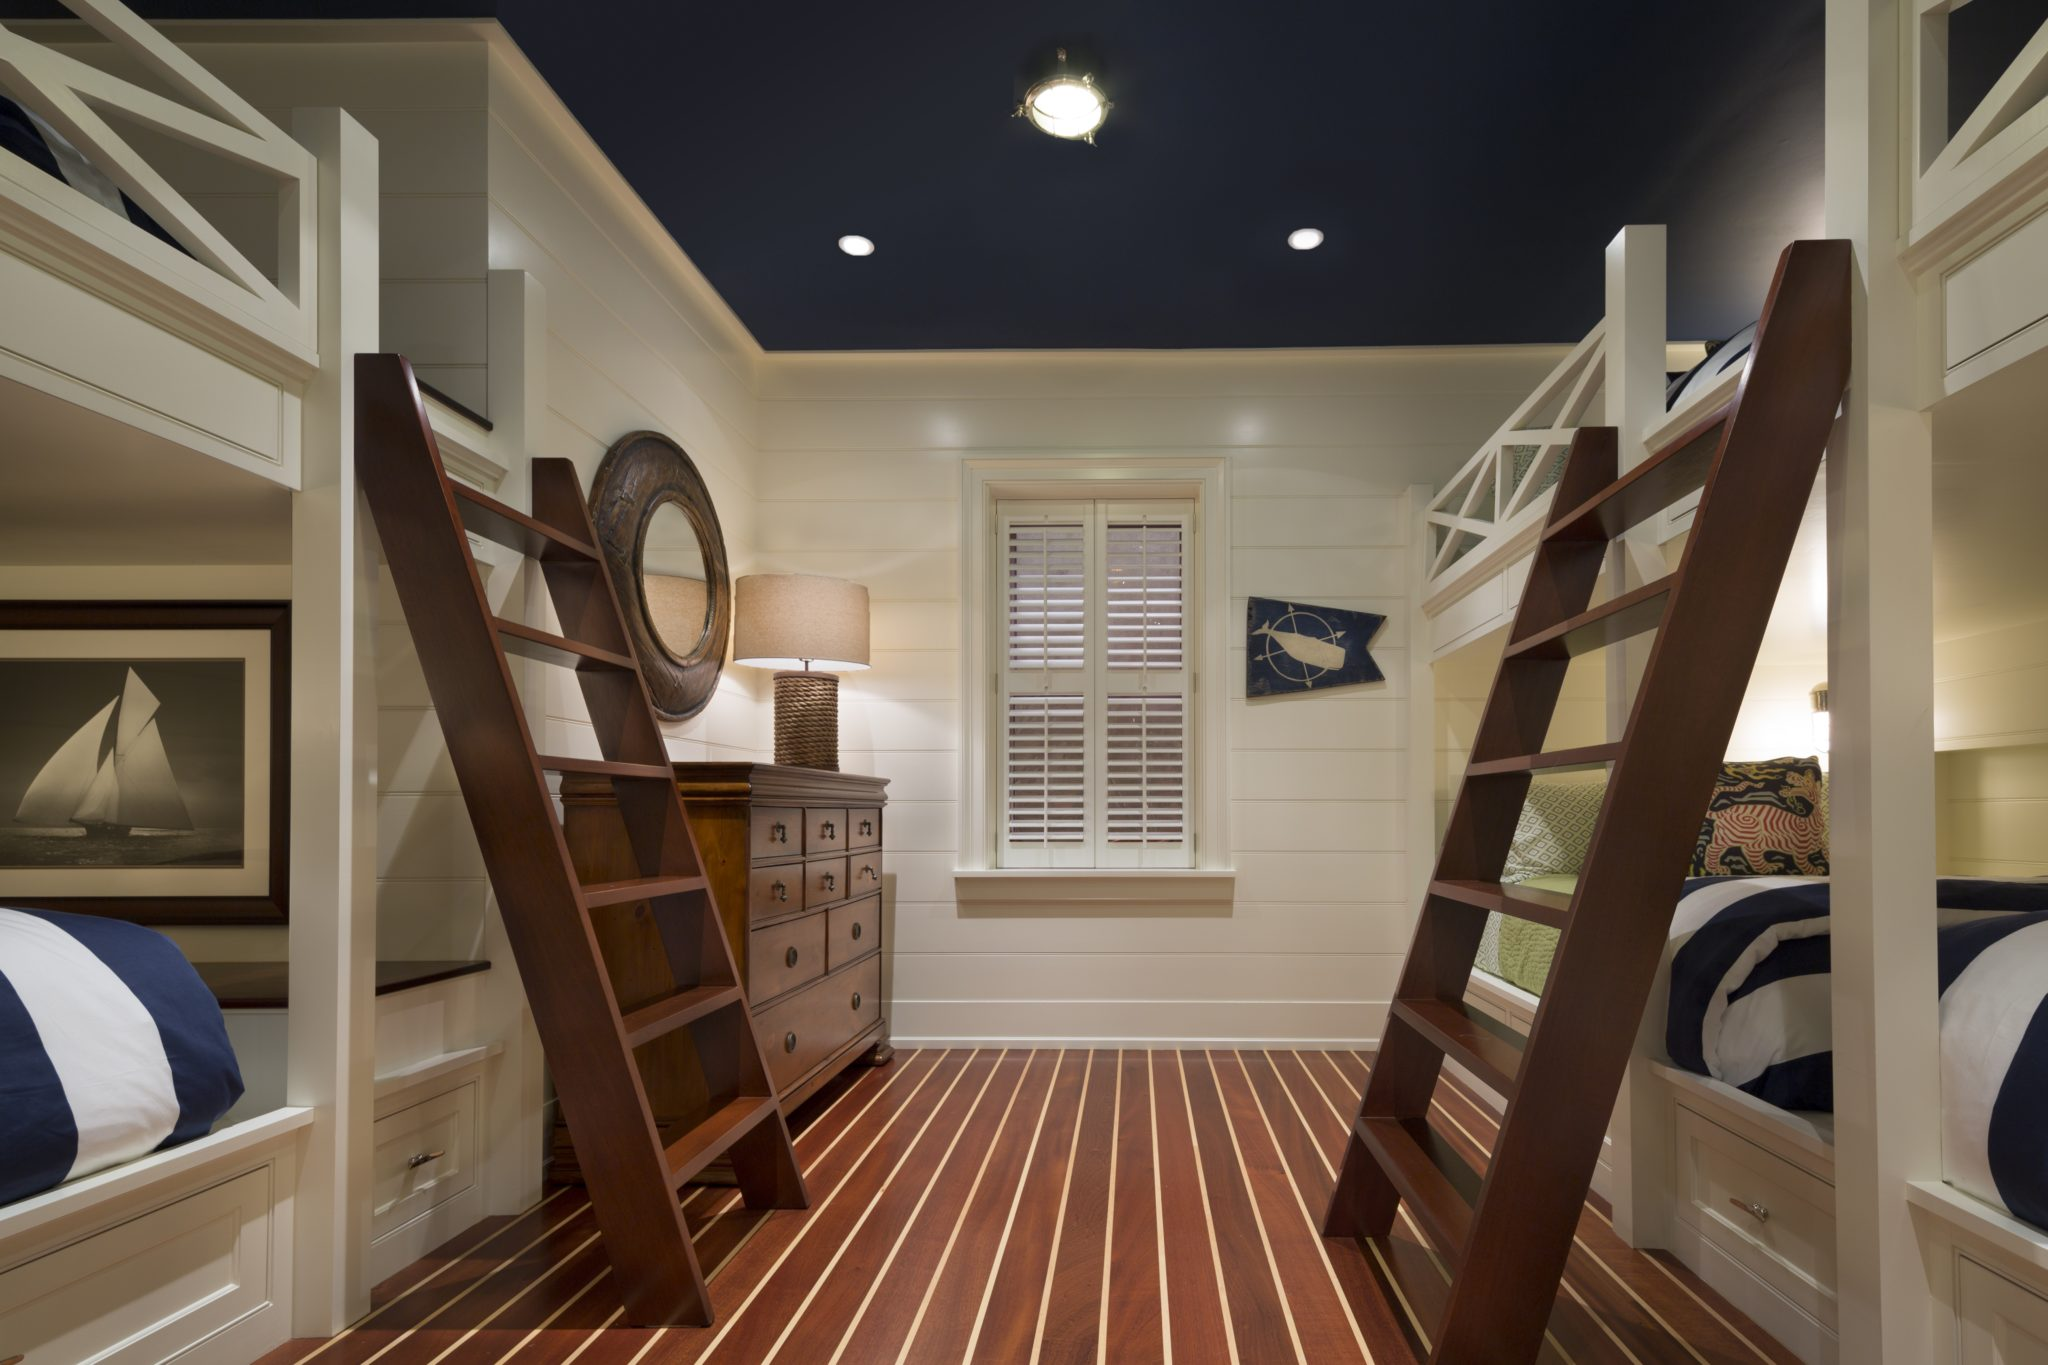 Nautical bedroom with built-in bunk beds, shiplap walls and navy blue ceiling by SLC Interiors